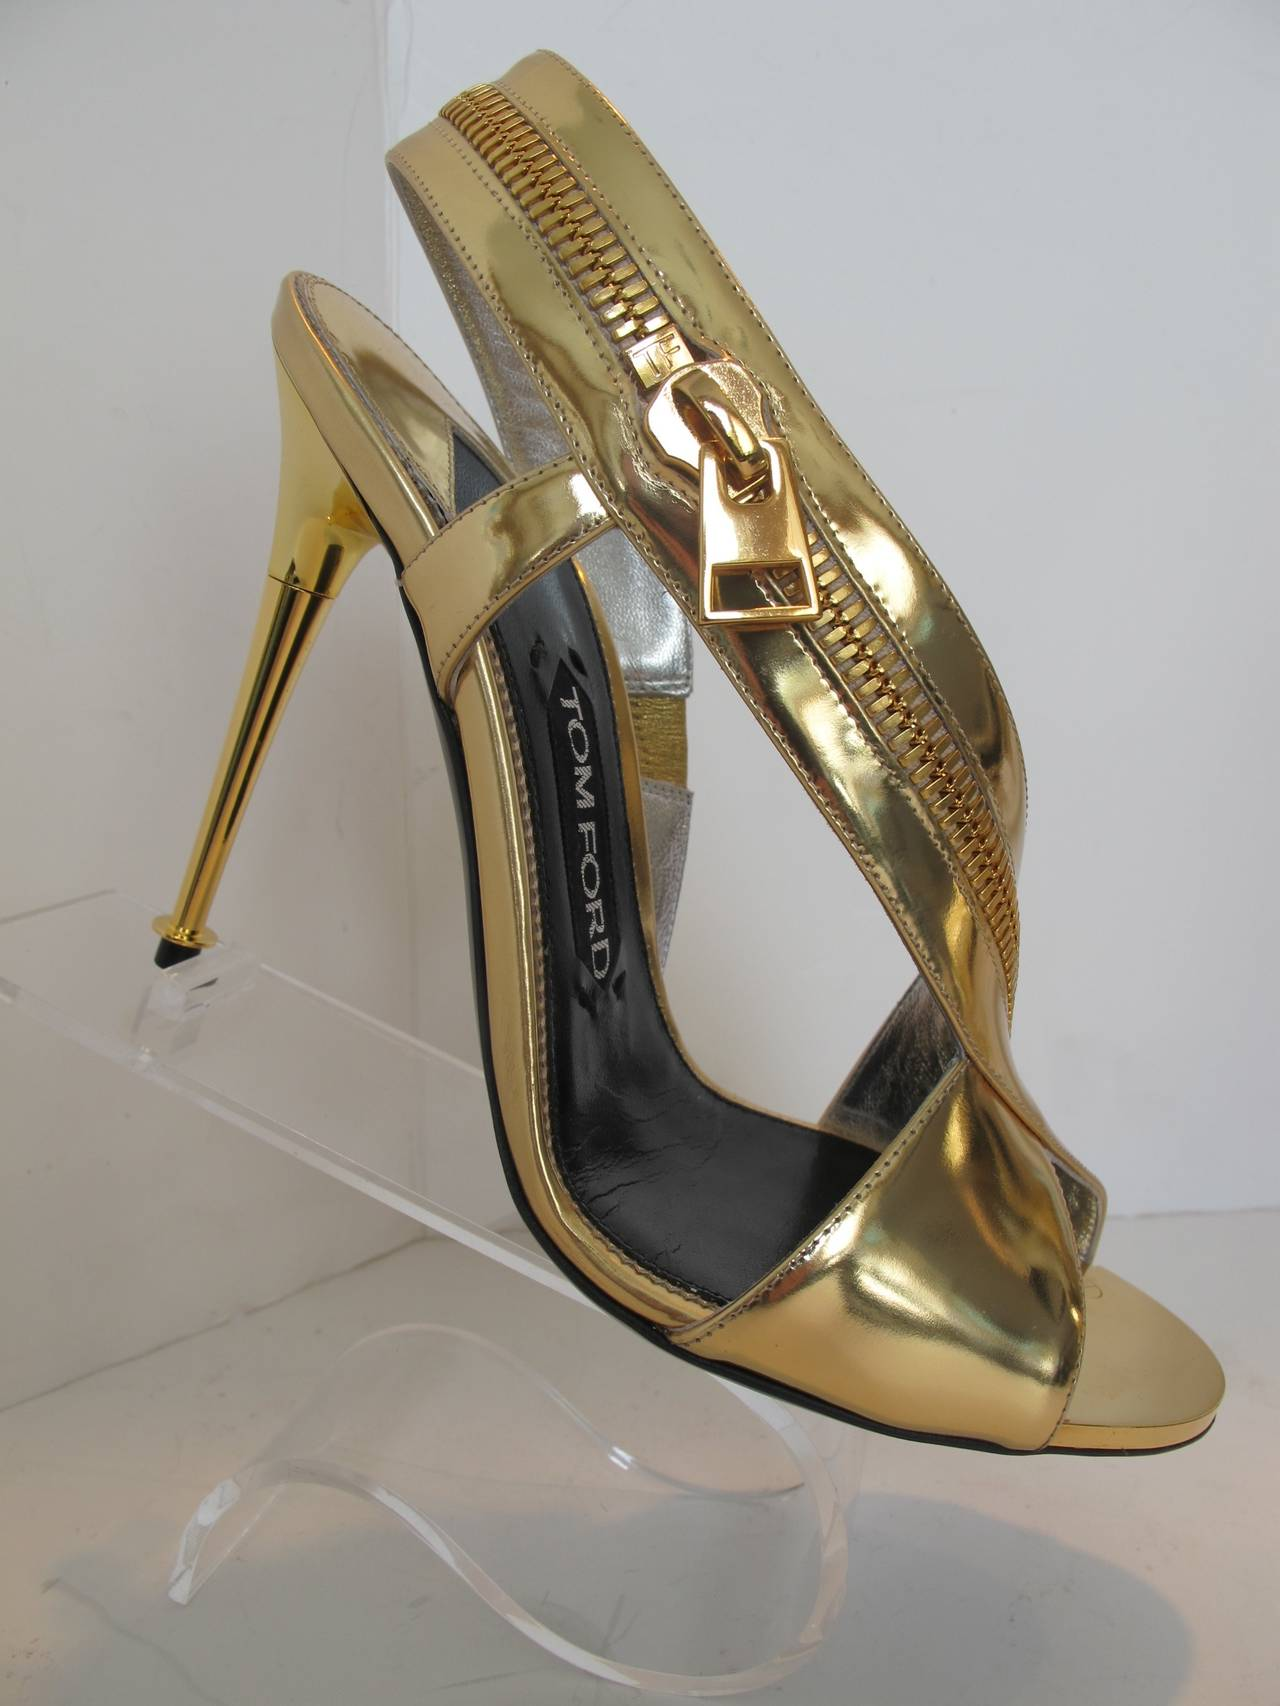 2014 Tom Ford Gold Sling Back Sandal With Wrap Around